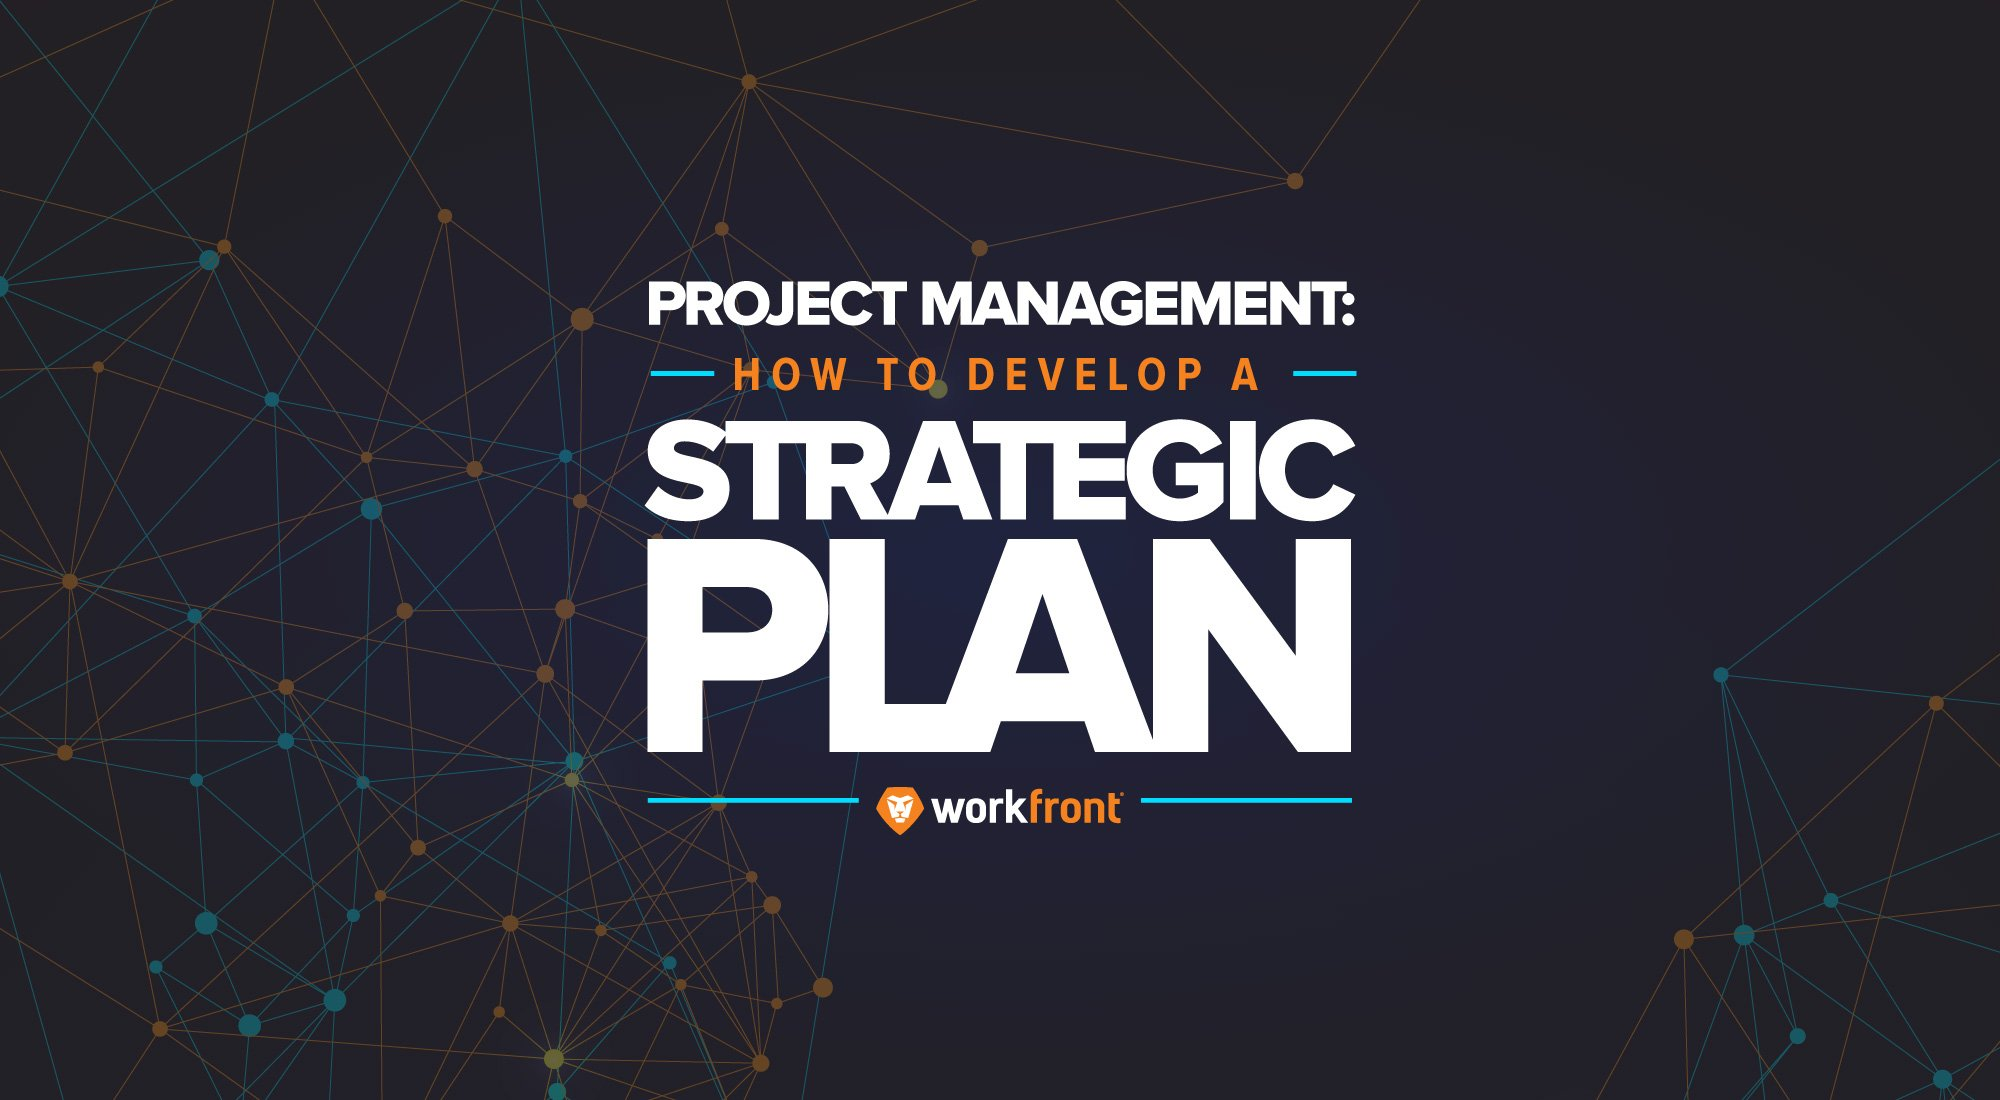 How to develop a project 80